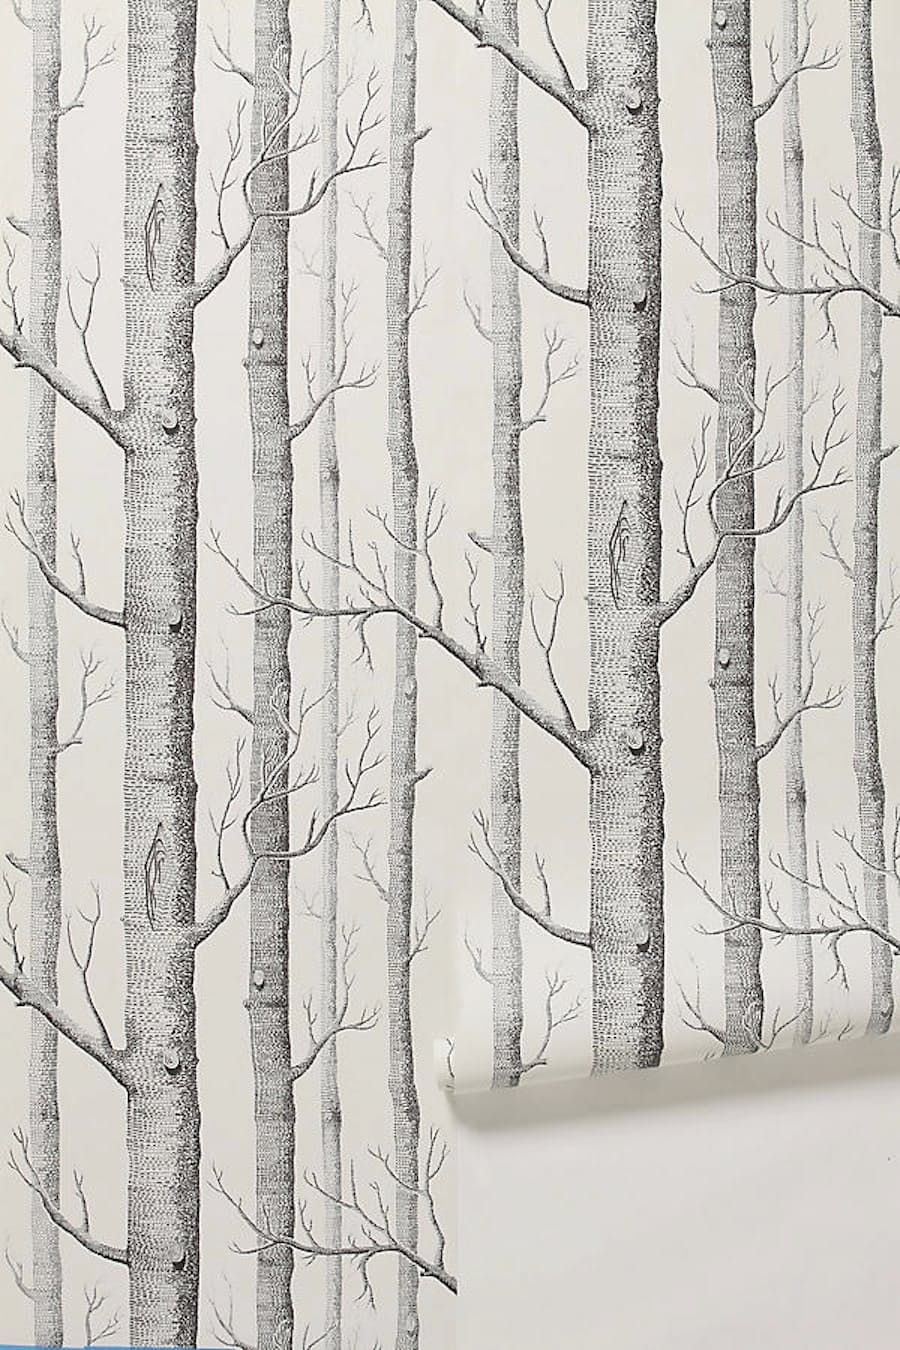 10 Excellent Sources For Buying Birch Tree Wallpaper Birch Tree Wallpaper Wood Wallpaper Birch Wallpaper